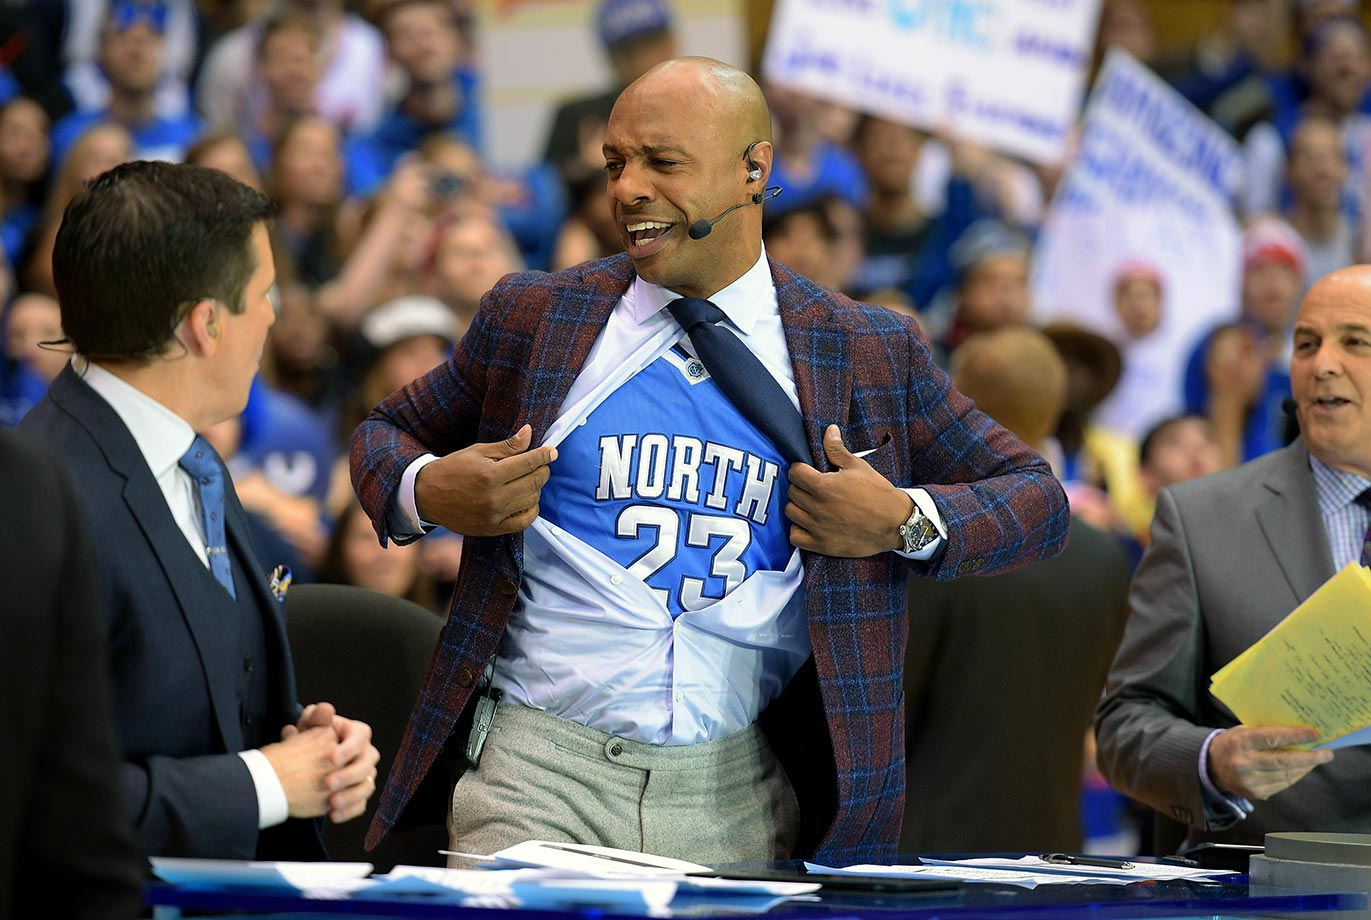 College GameDay host and Duke alumn Jay Williams reveals his prediction for the game between North Carolina and Duke in Durham, N.C.